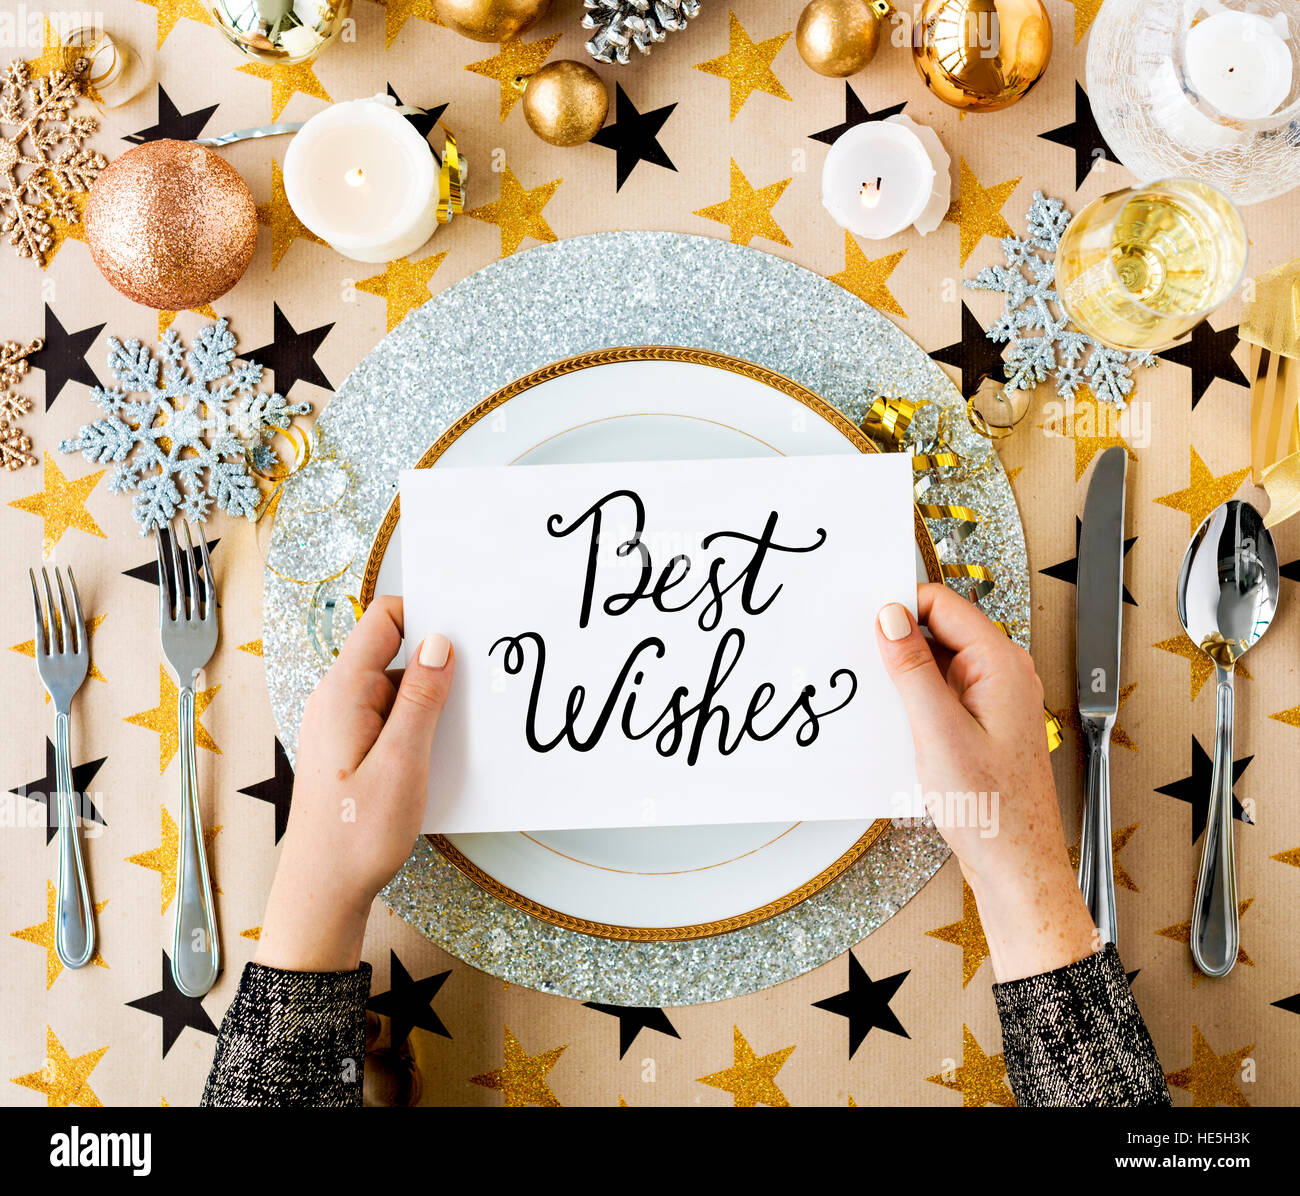 Best wishes celebration greetings word stock photo 129200951 alamy best wishes celebration greetings word kristyandbryce Images